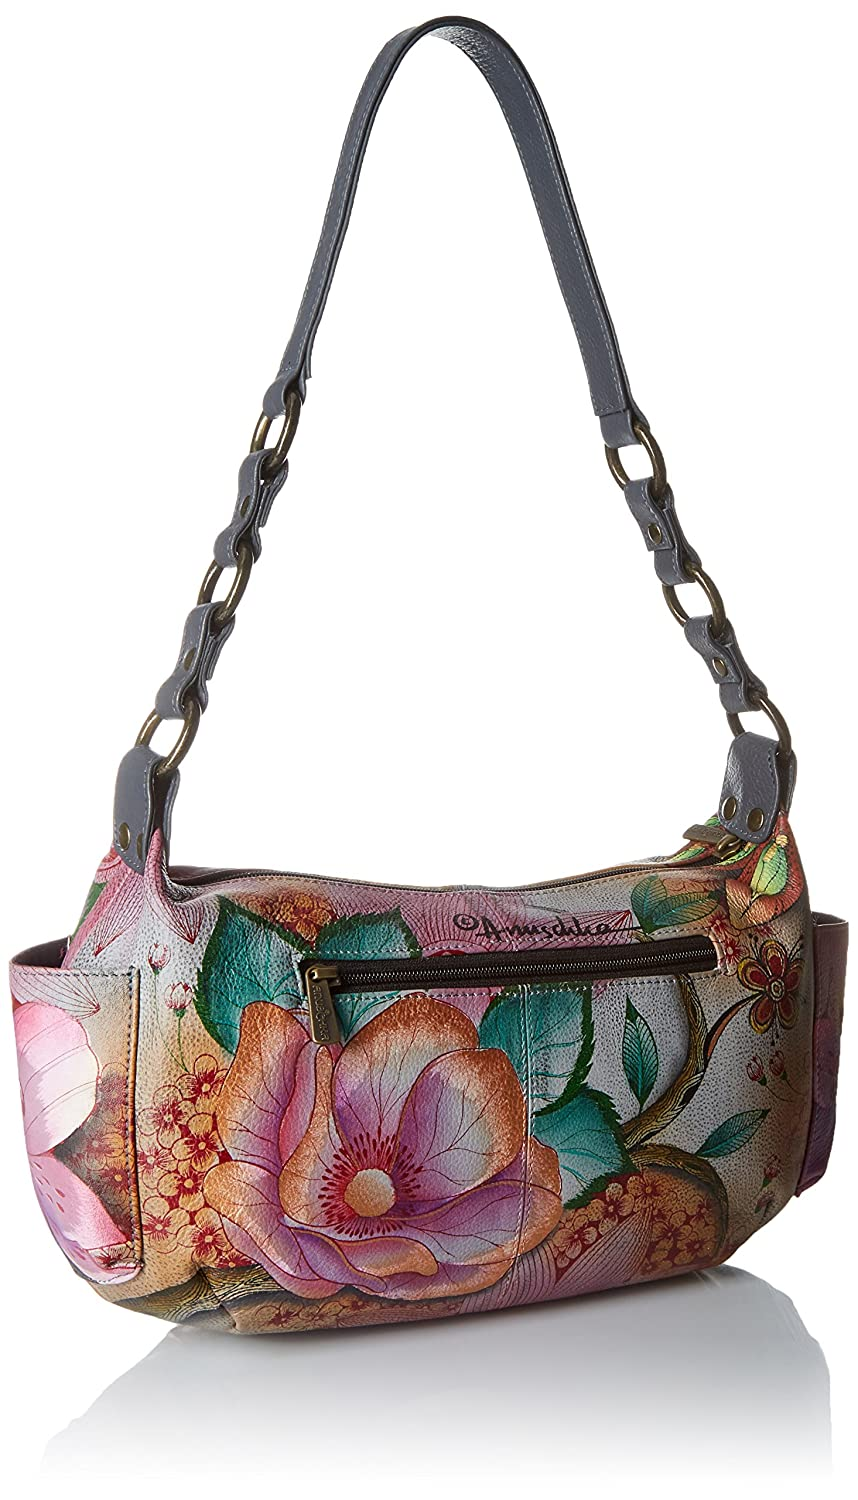 e9497b95fd Amazon.com  Anuschka Handpainted Leather East West with Side Pockets ...